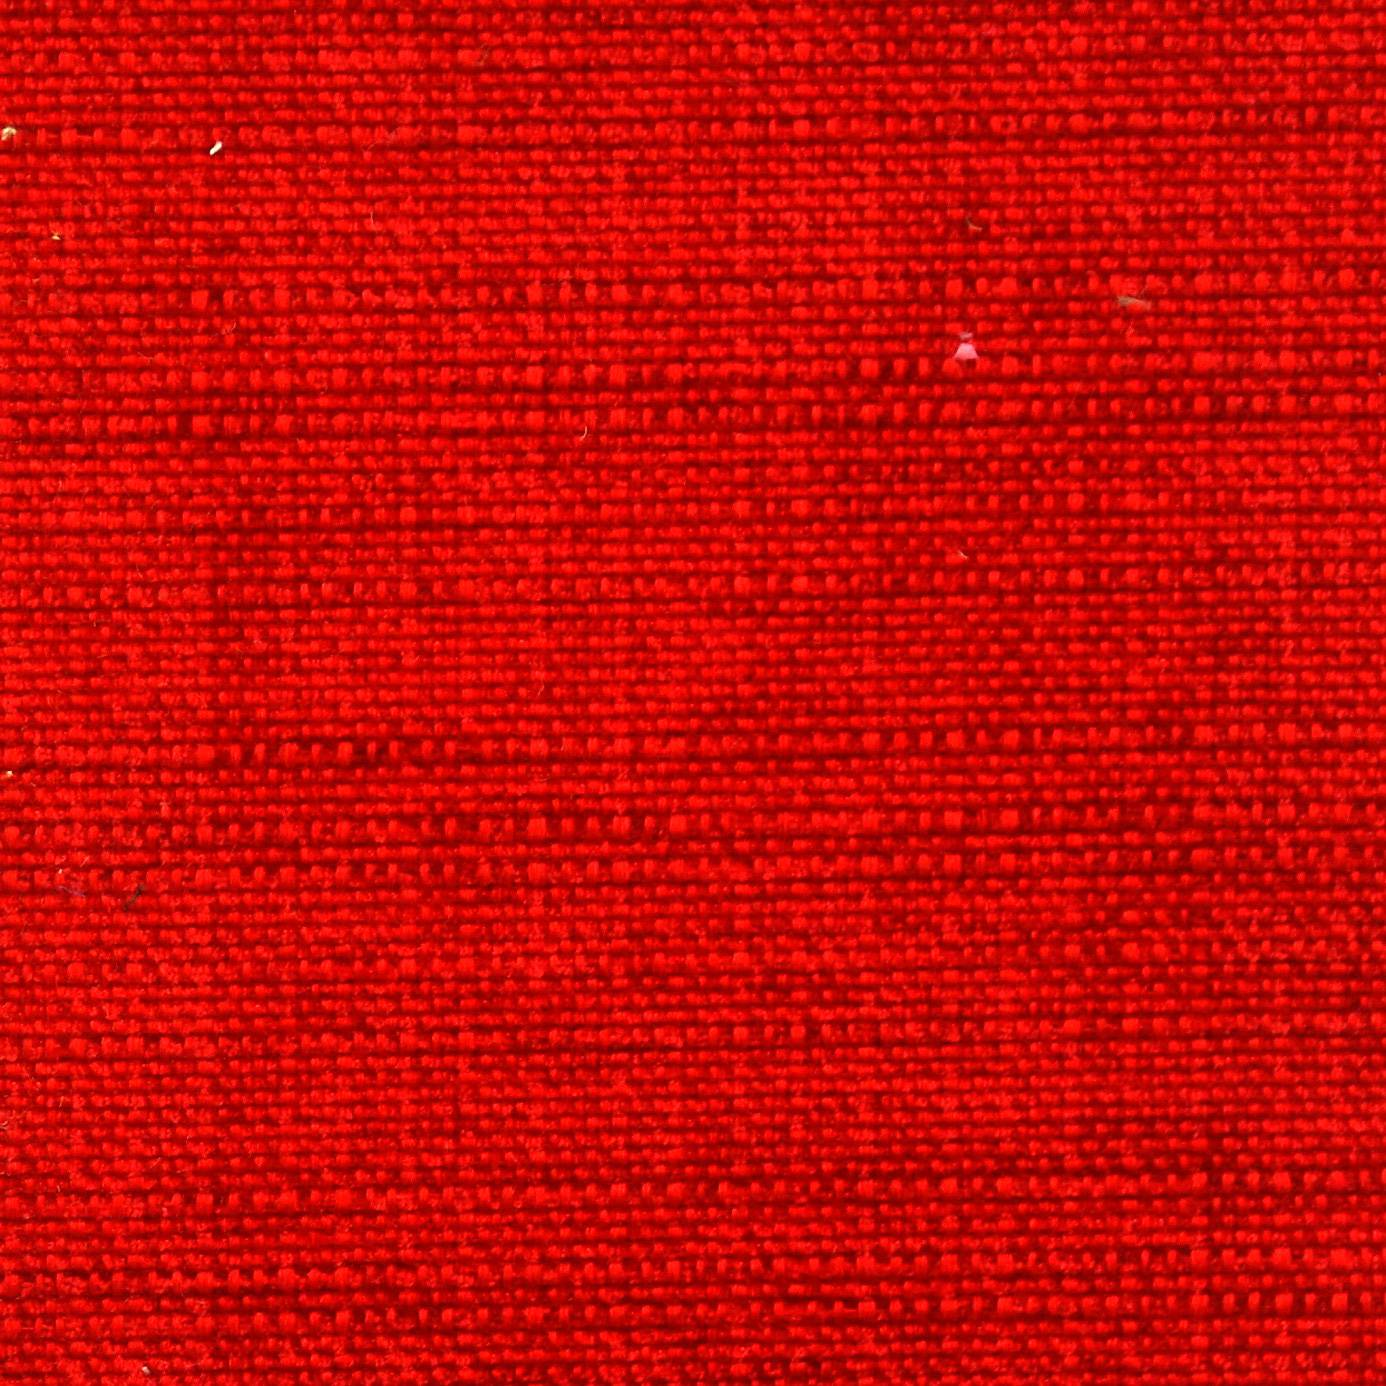 Auskerry Fabric Scarlet F2021 25 Designers Guild